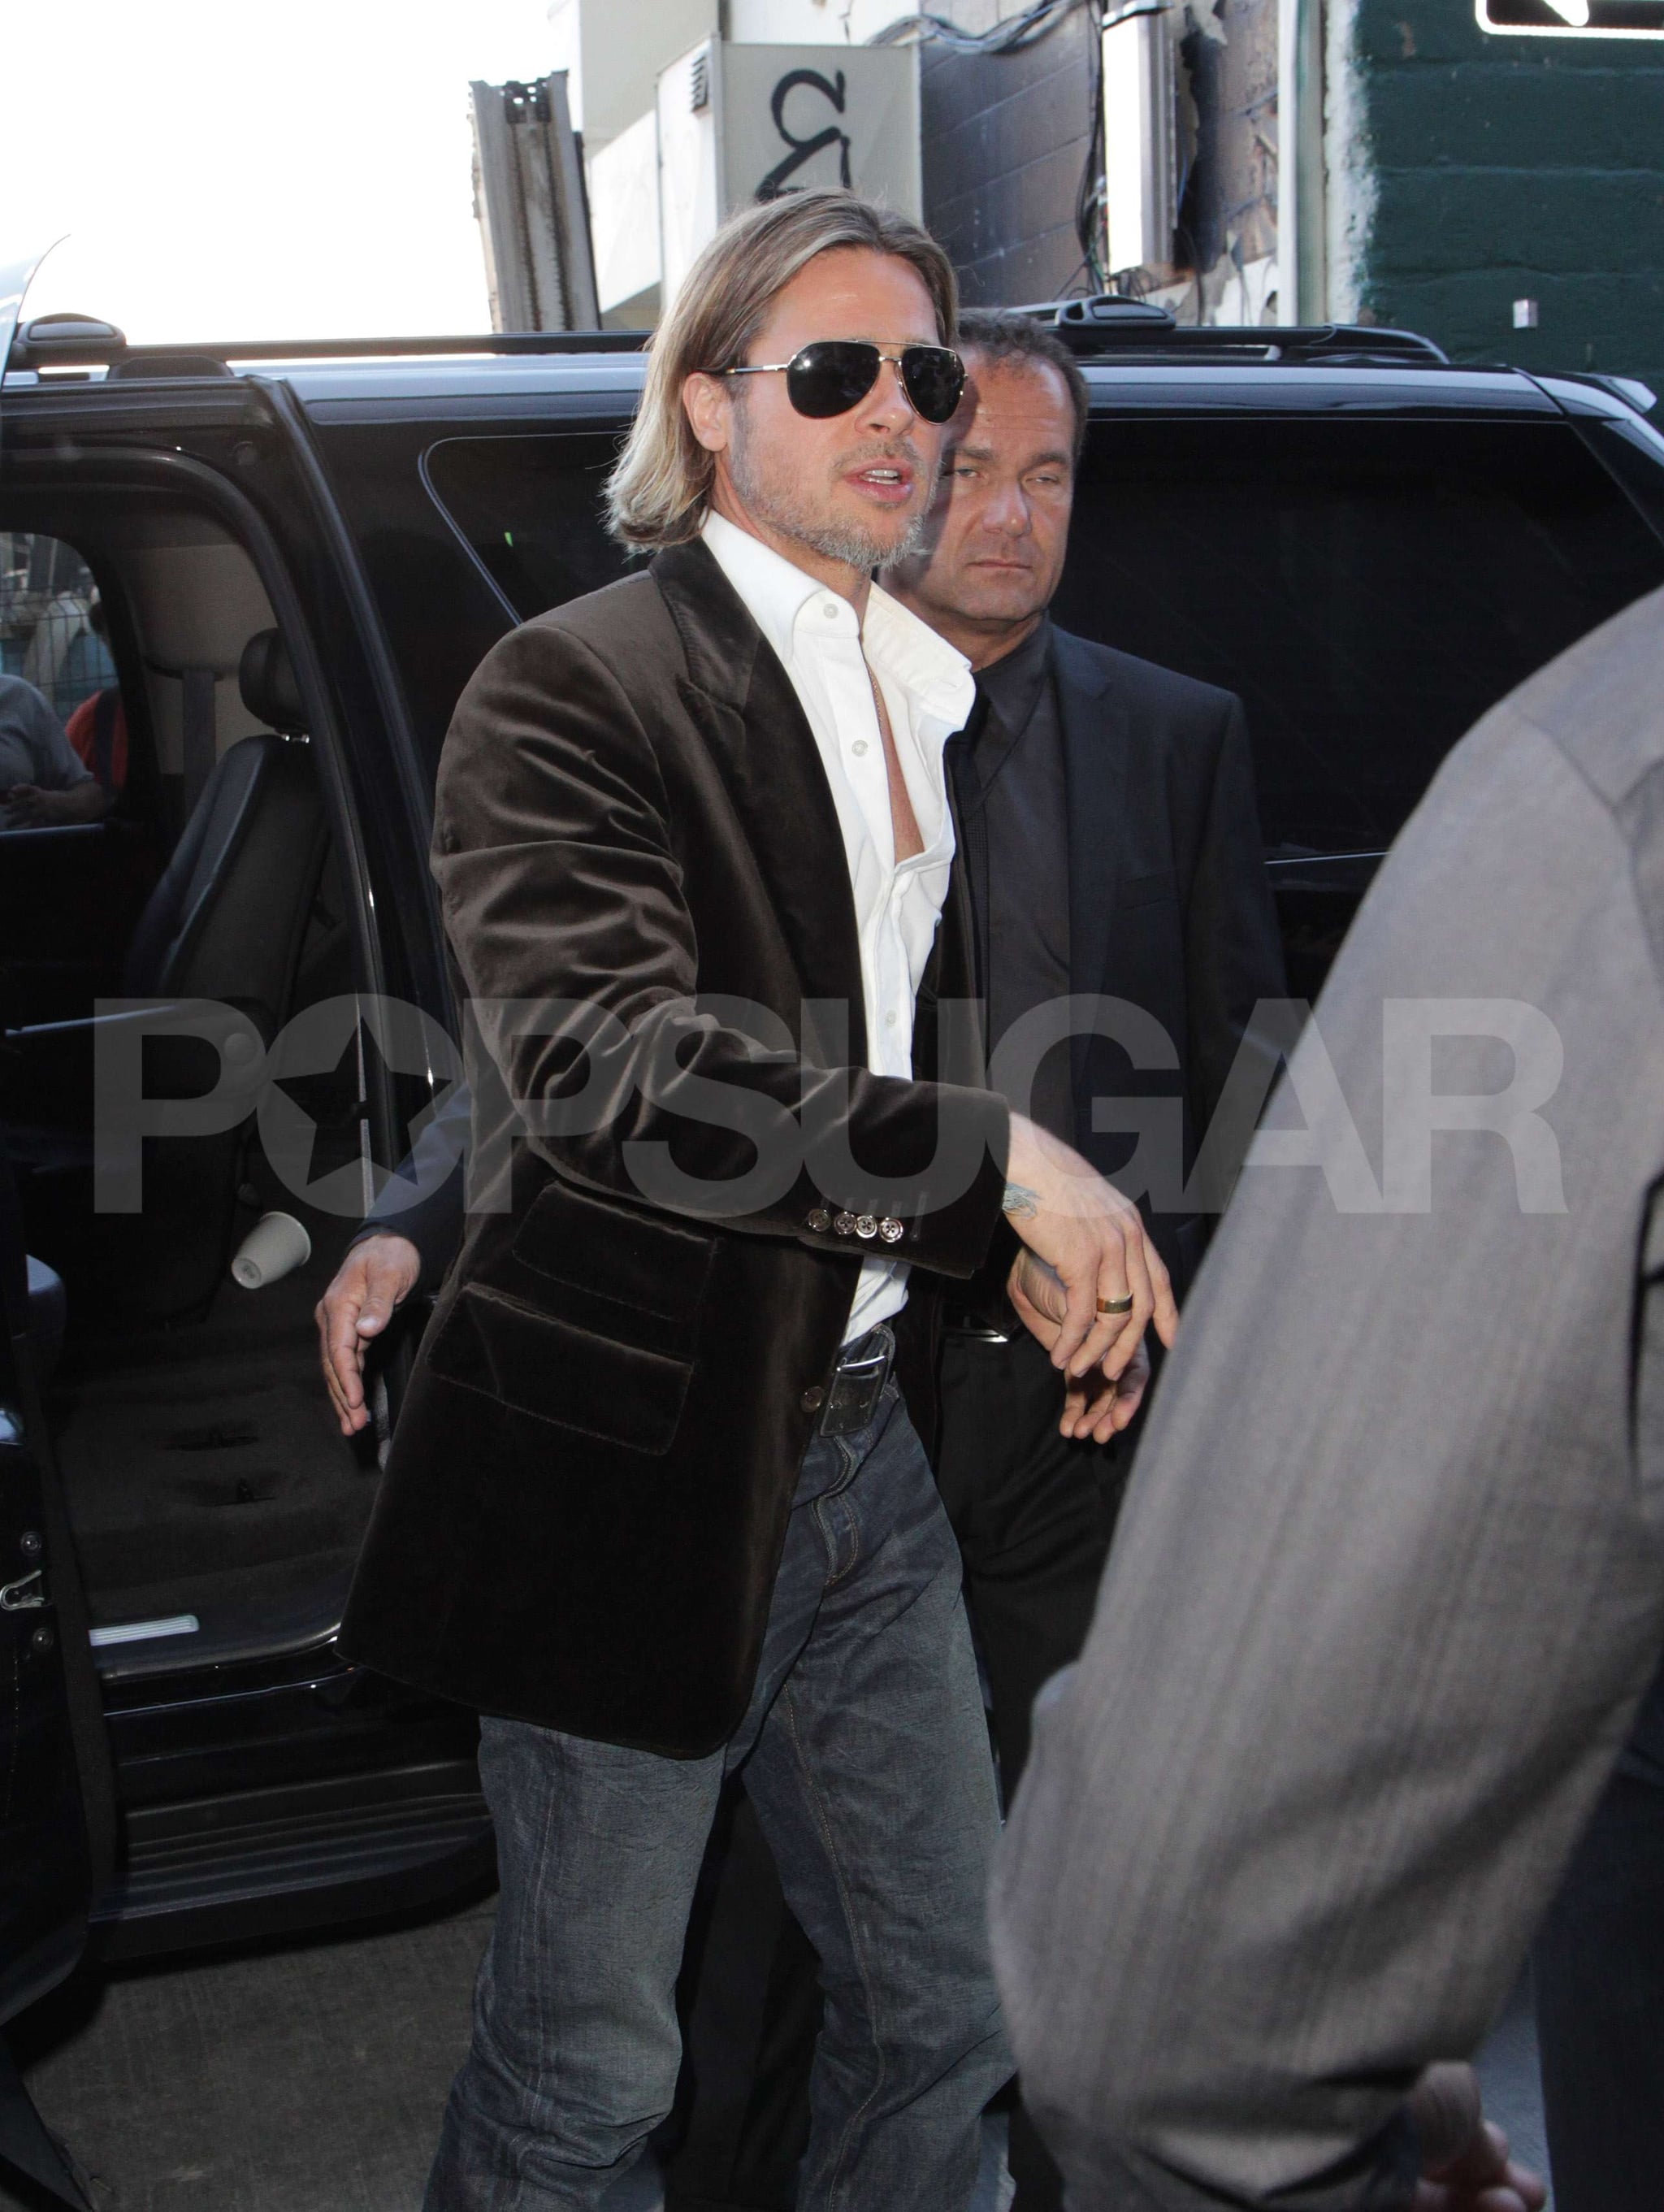 Brad Pitt is looking good at the Toronto Film Festival.